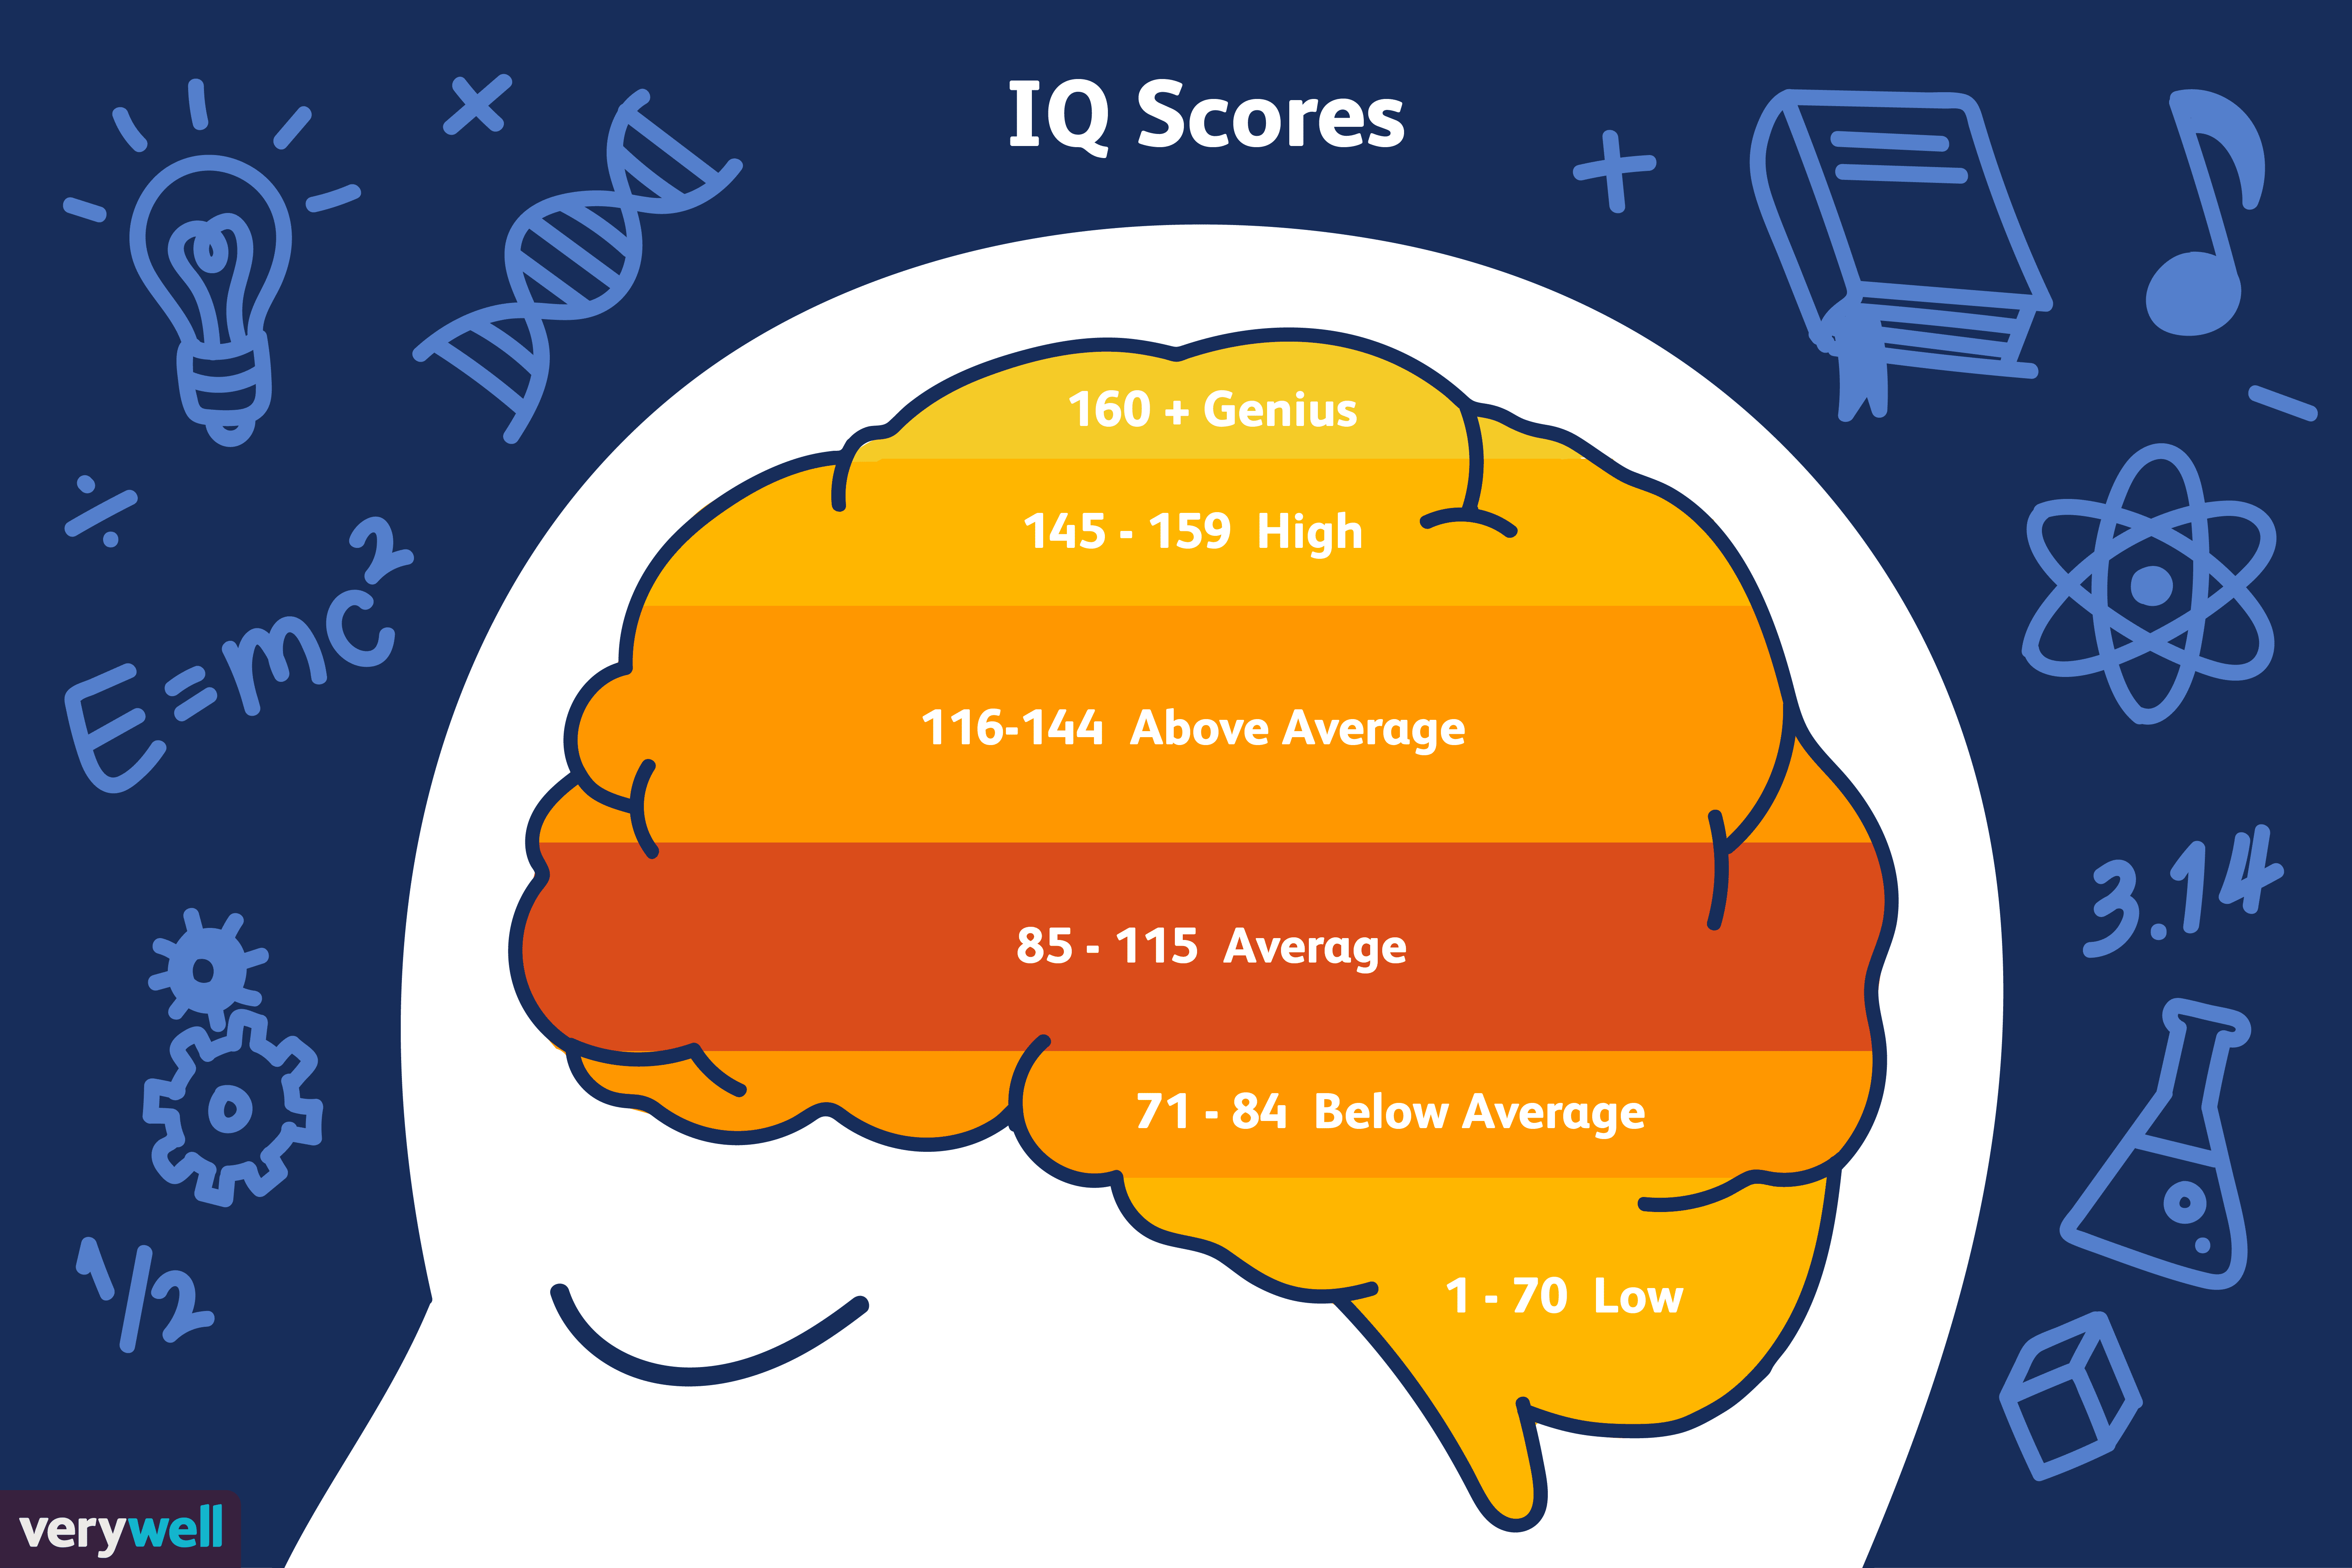 What Is Considered a Genius IQ Score?